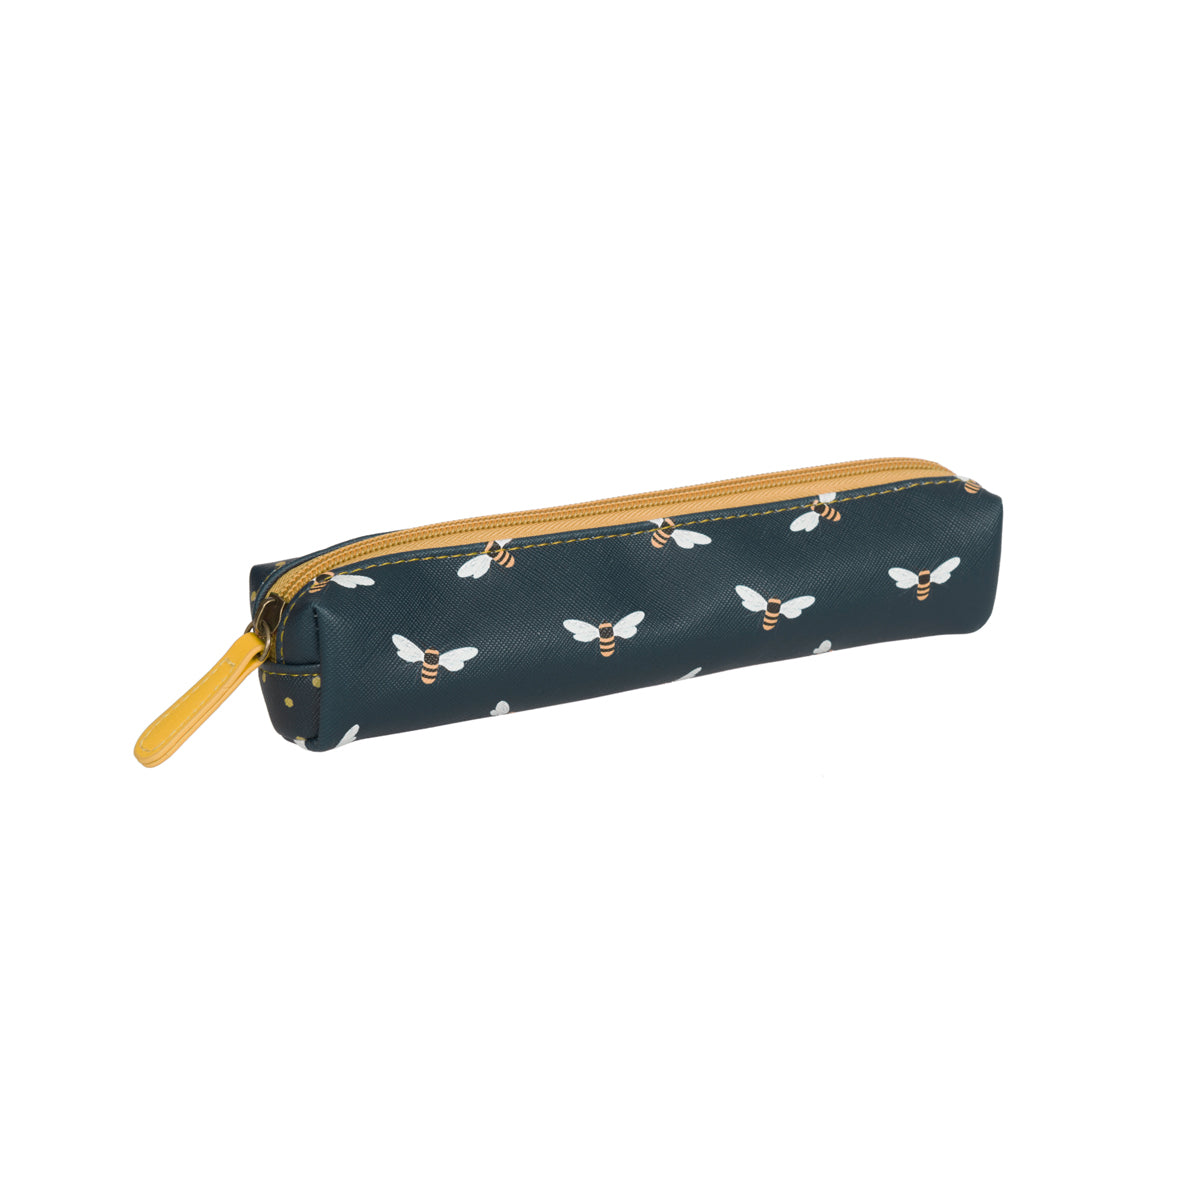 Slimline pencil case bees design